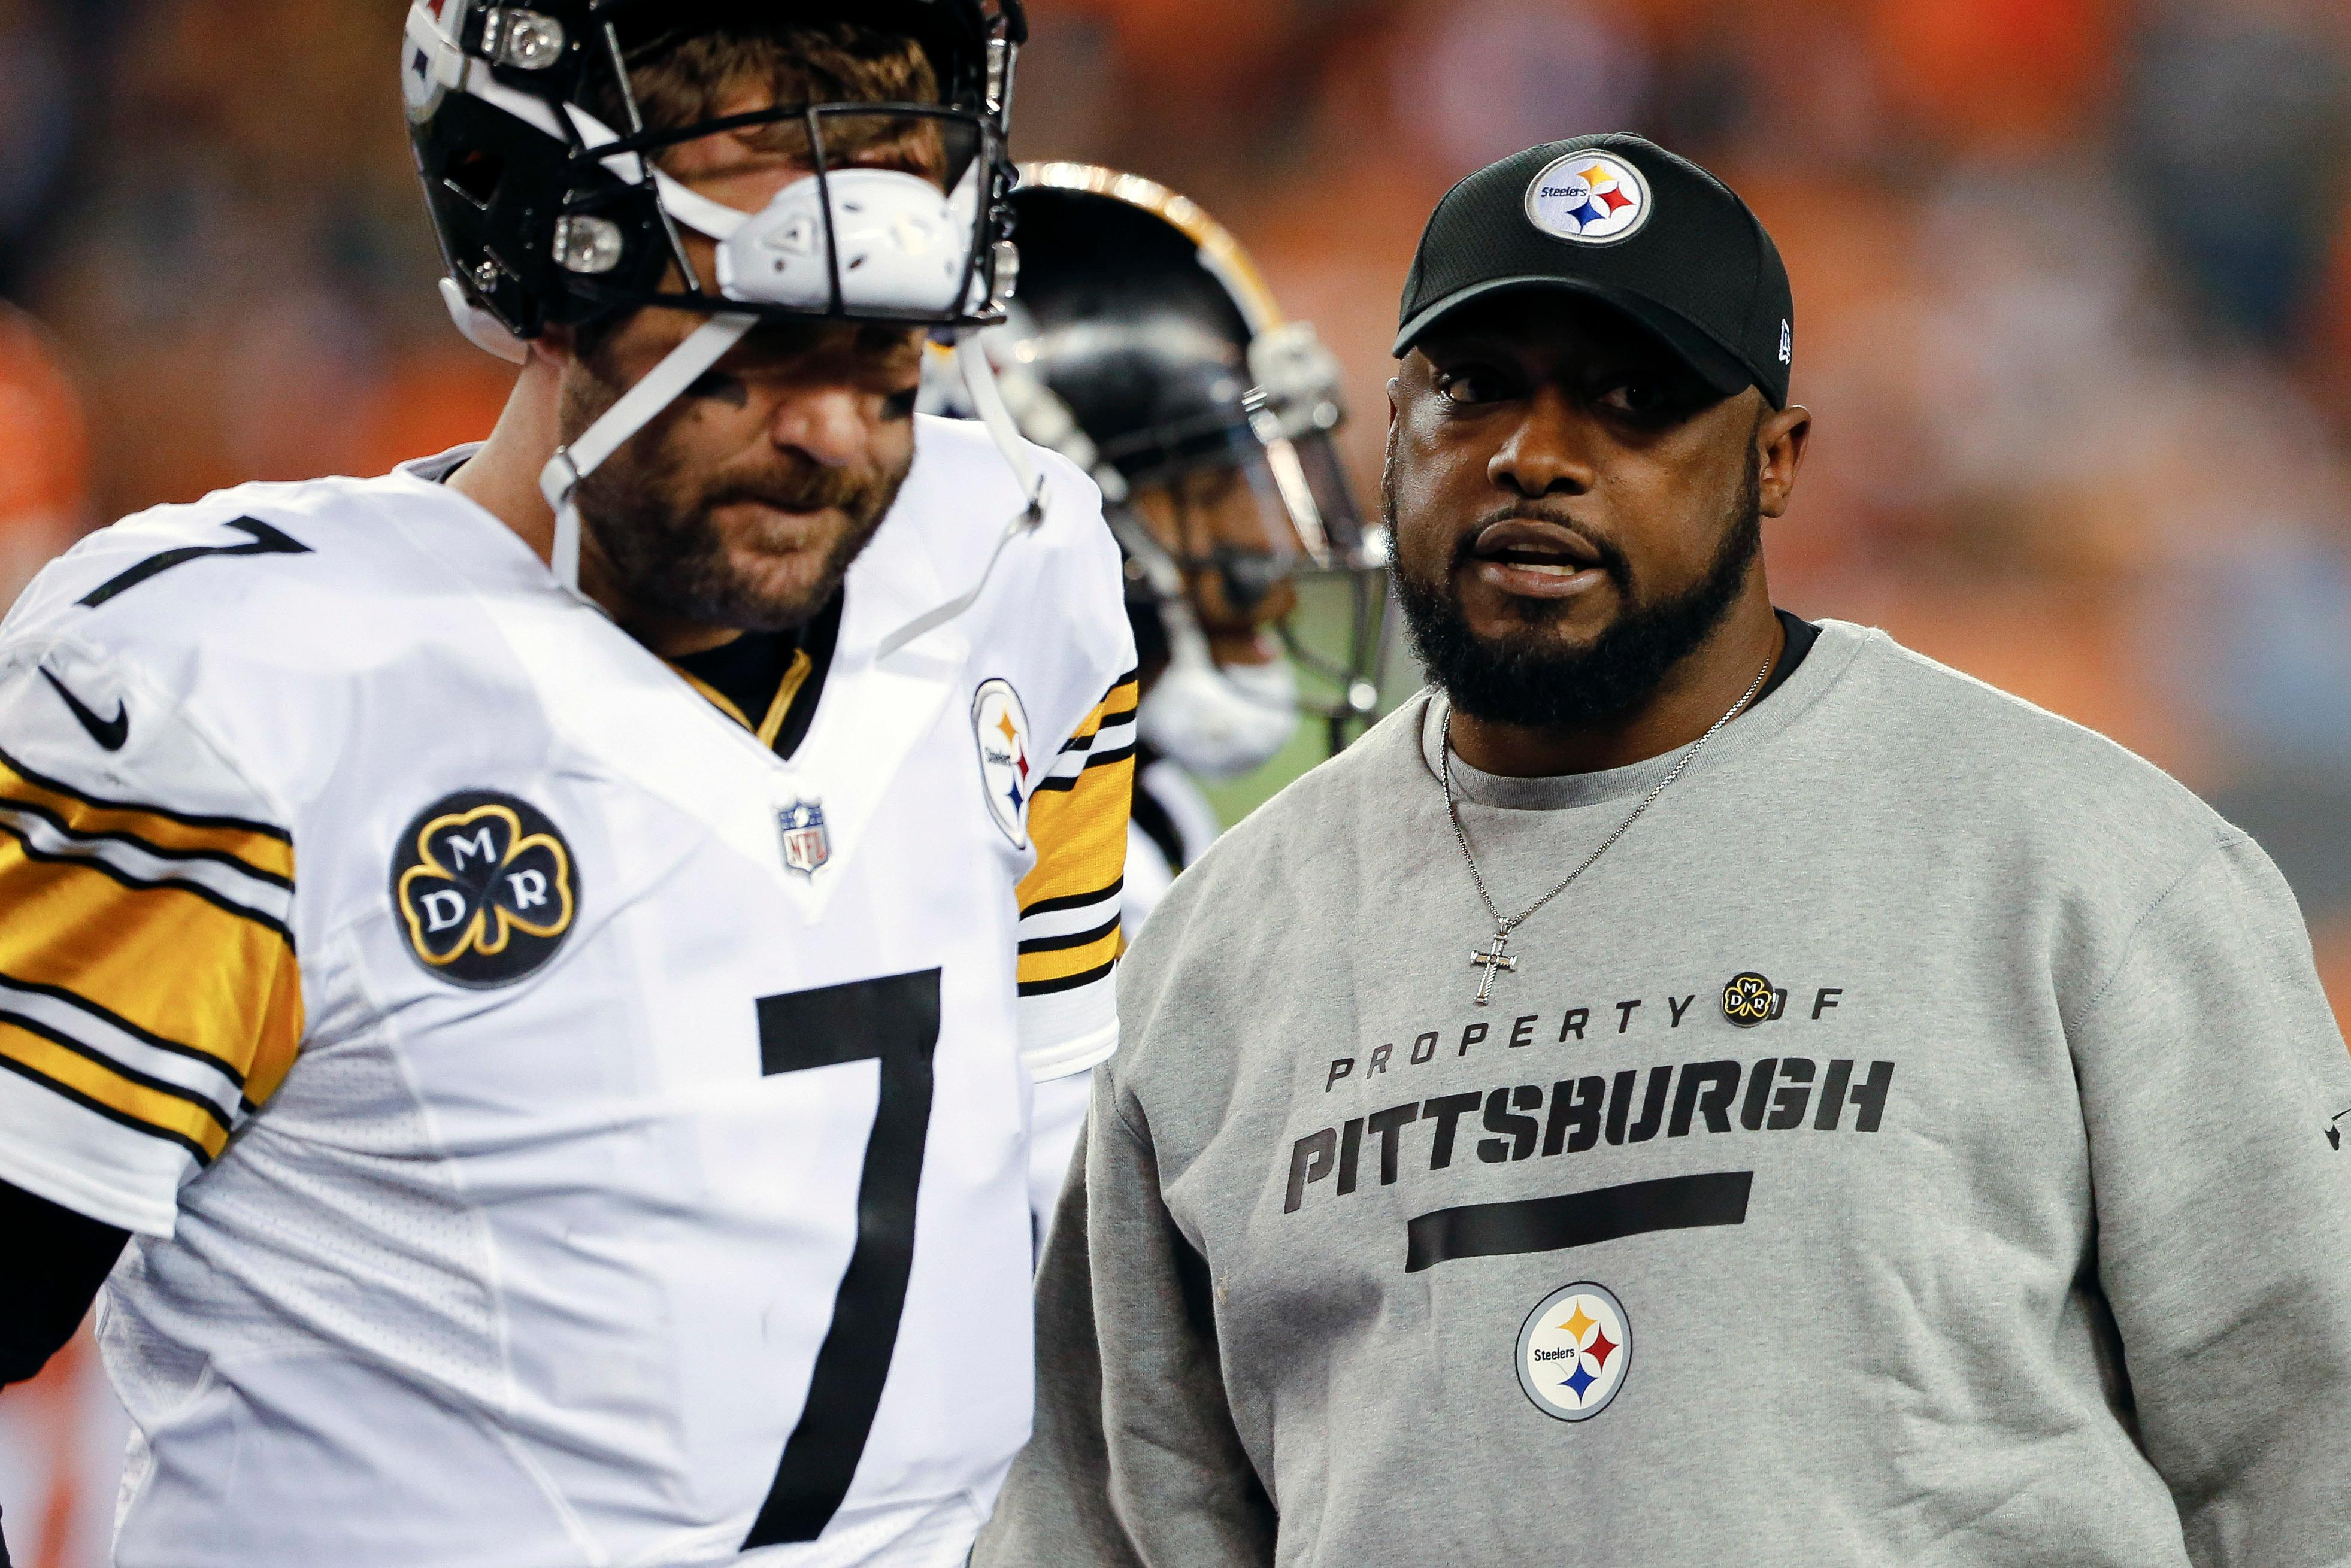 Pittsburgh Steelers head coach Mike Tomlin, right, speaks with quarterback Ben Roethlisberger (7) in the first half of an NFL football game against the Cincinnati Bengals, Monday, Dec. 4, 2017, in Cincinnati. (AP Photo/Gary Landers)